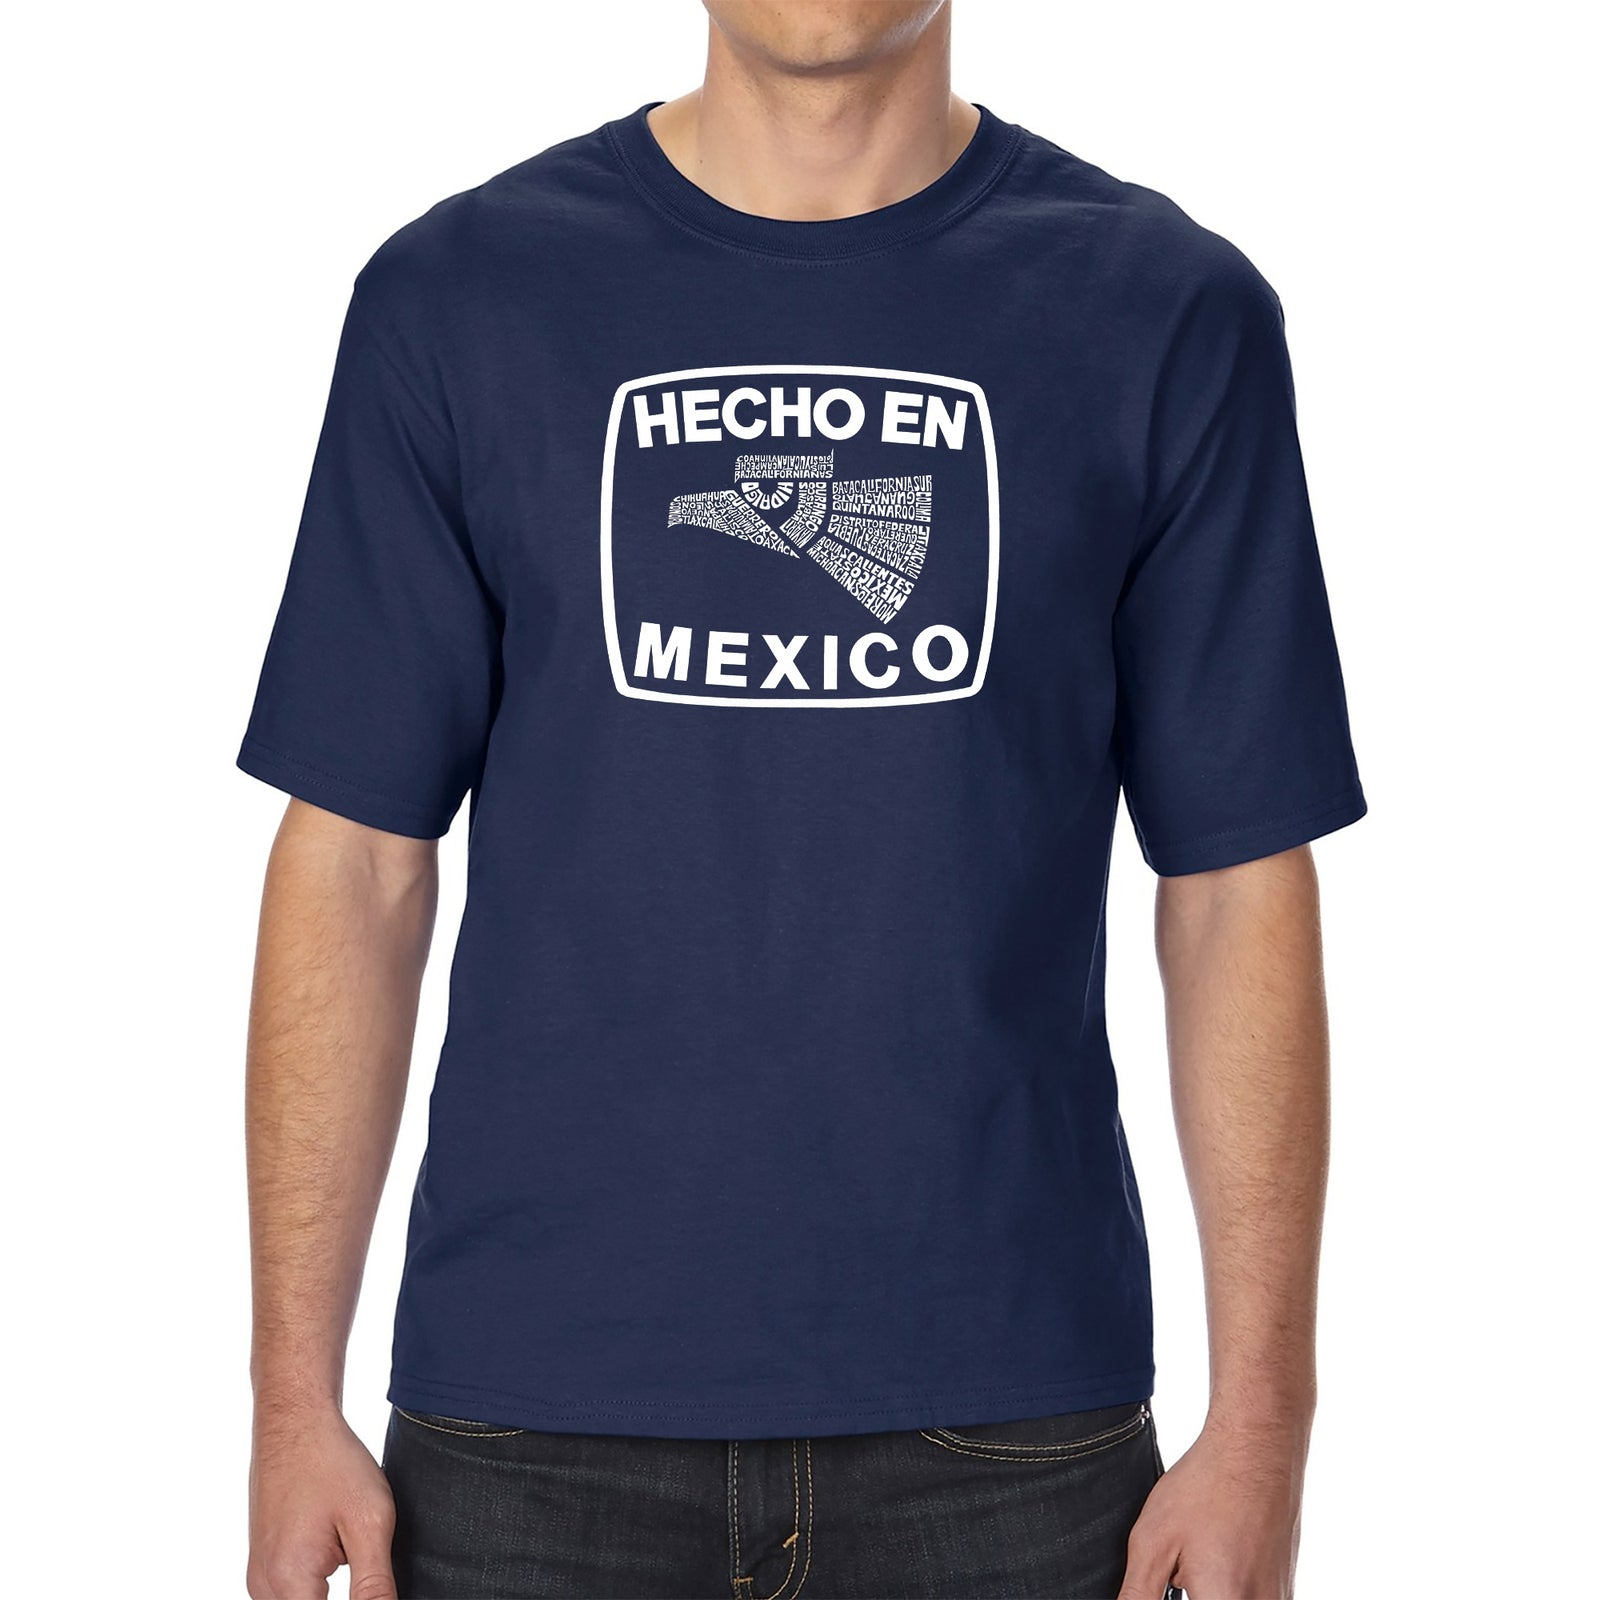 Men's Tall and Long Word Art T-shirt - HECHO EN MEXICO